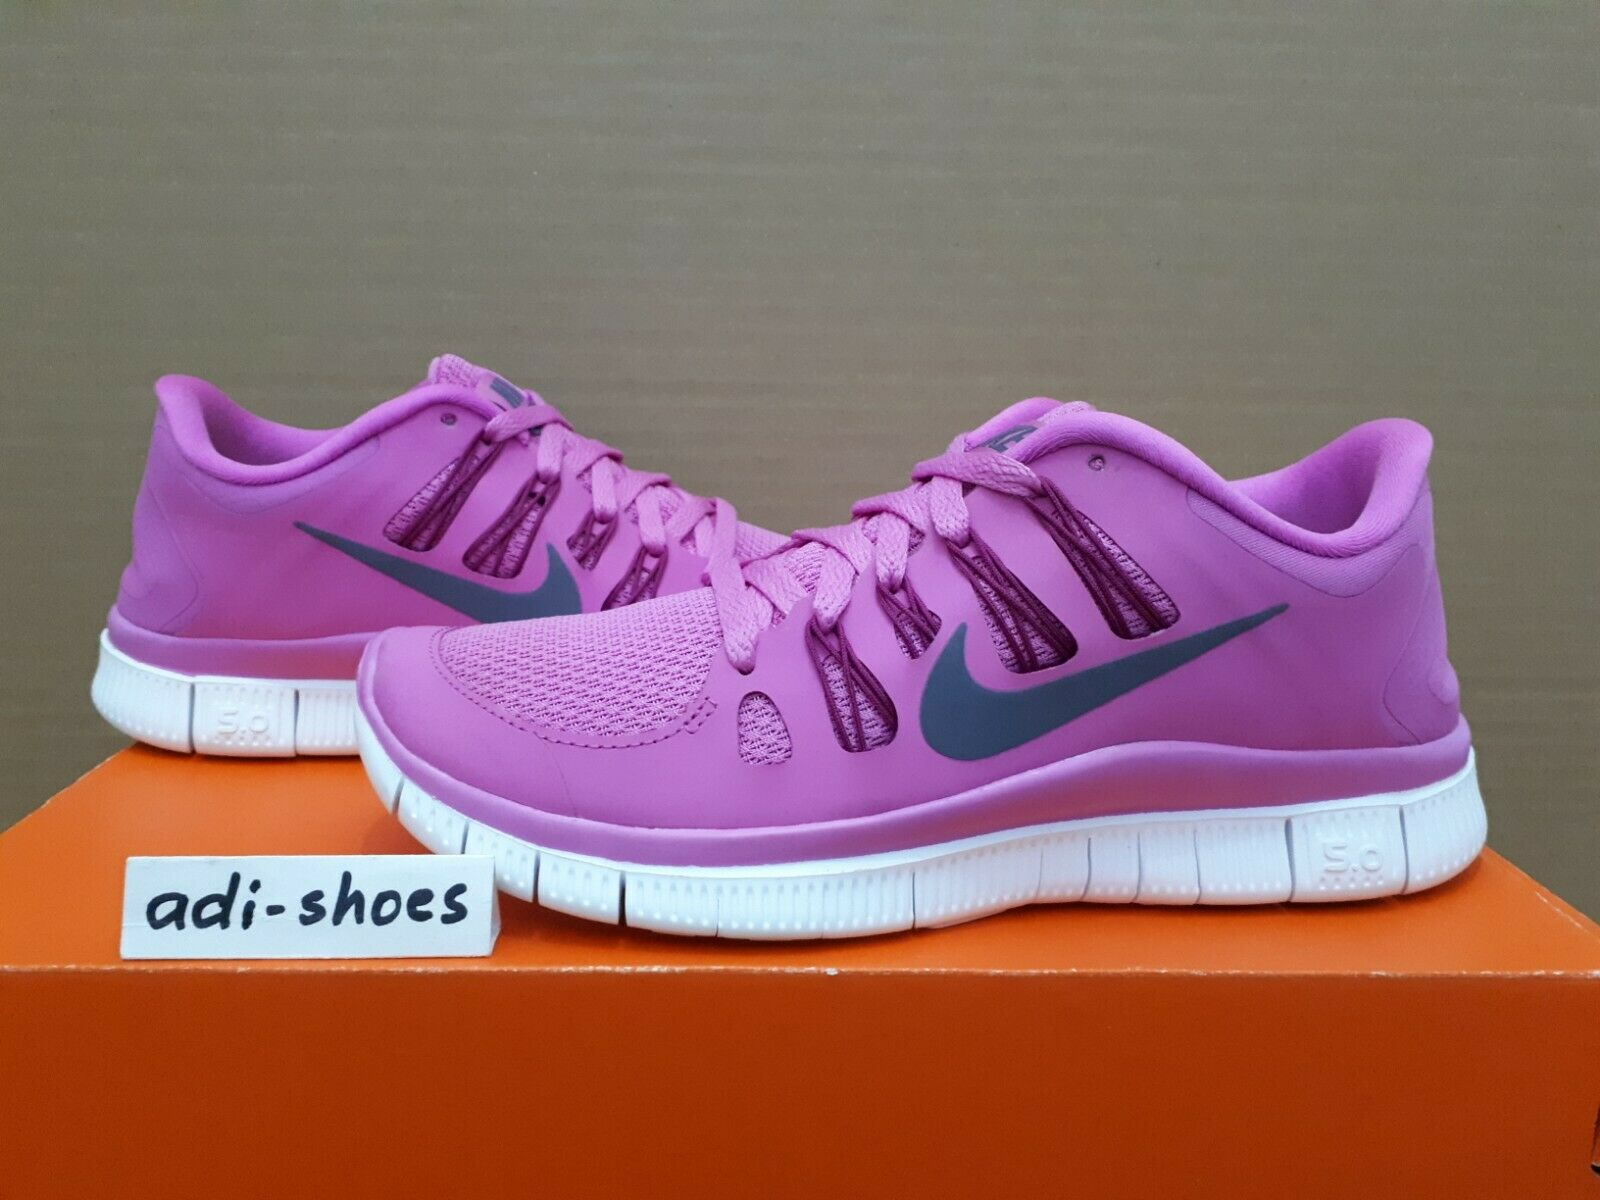 NIKE FREE 5.0+ RED purple US 6,5 7 7,5 transform 580591-500 rn flyknit 3.0 focus